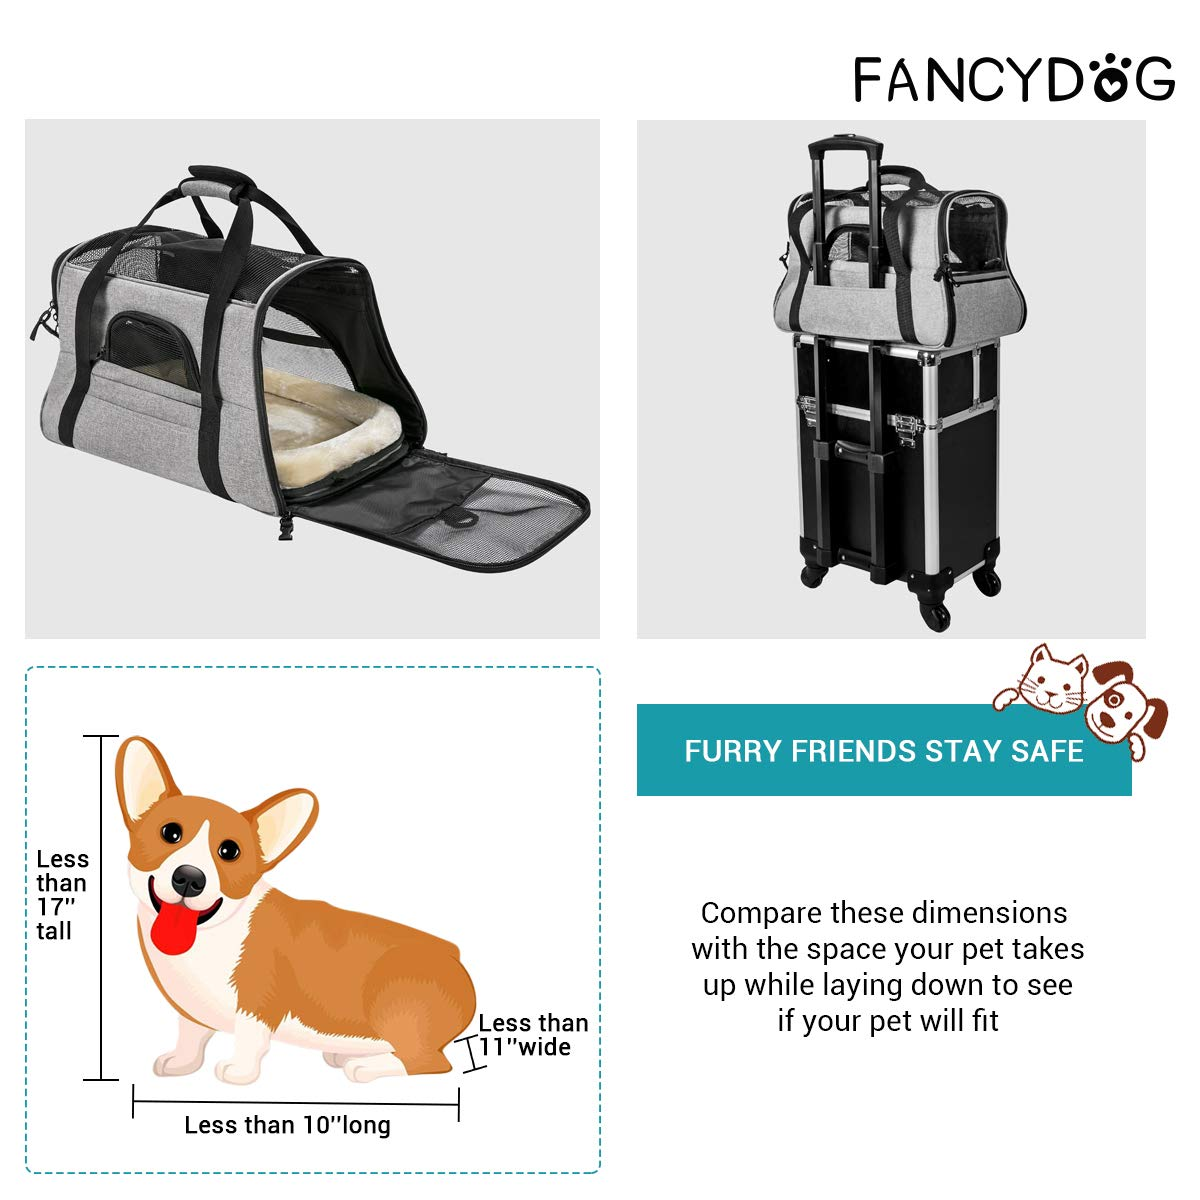 FANCYDOG Airline Approved Pet Carrier Soft Side Portable Pet Travel Bag with Mesh Windows Fleece Padding Under Seat Pet Bags for Small Dogs Cats (Grey)